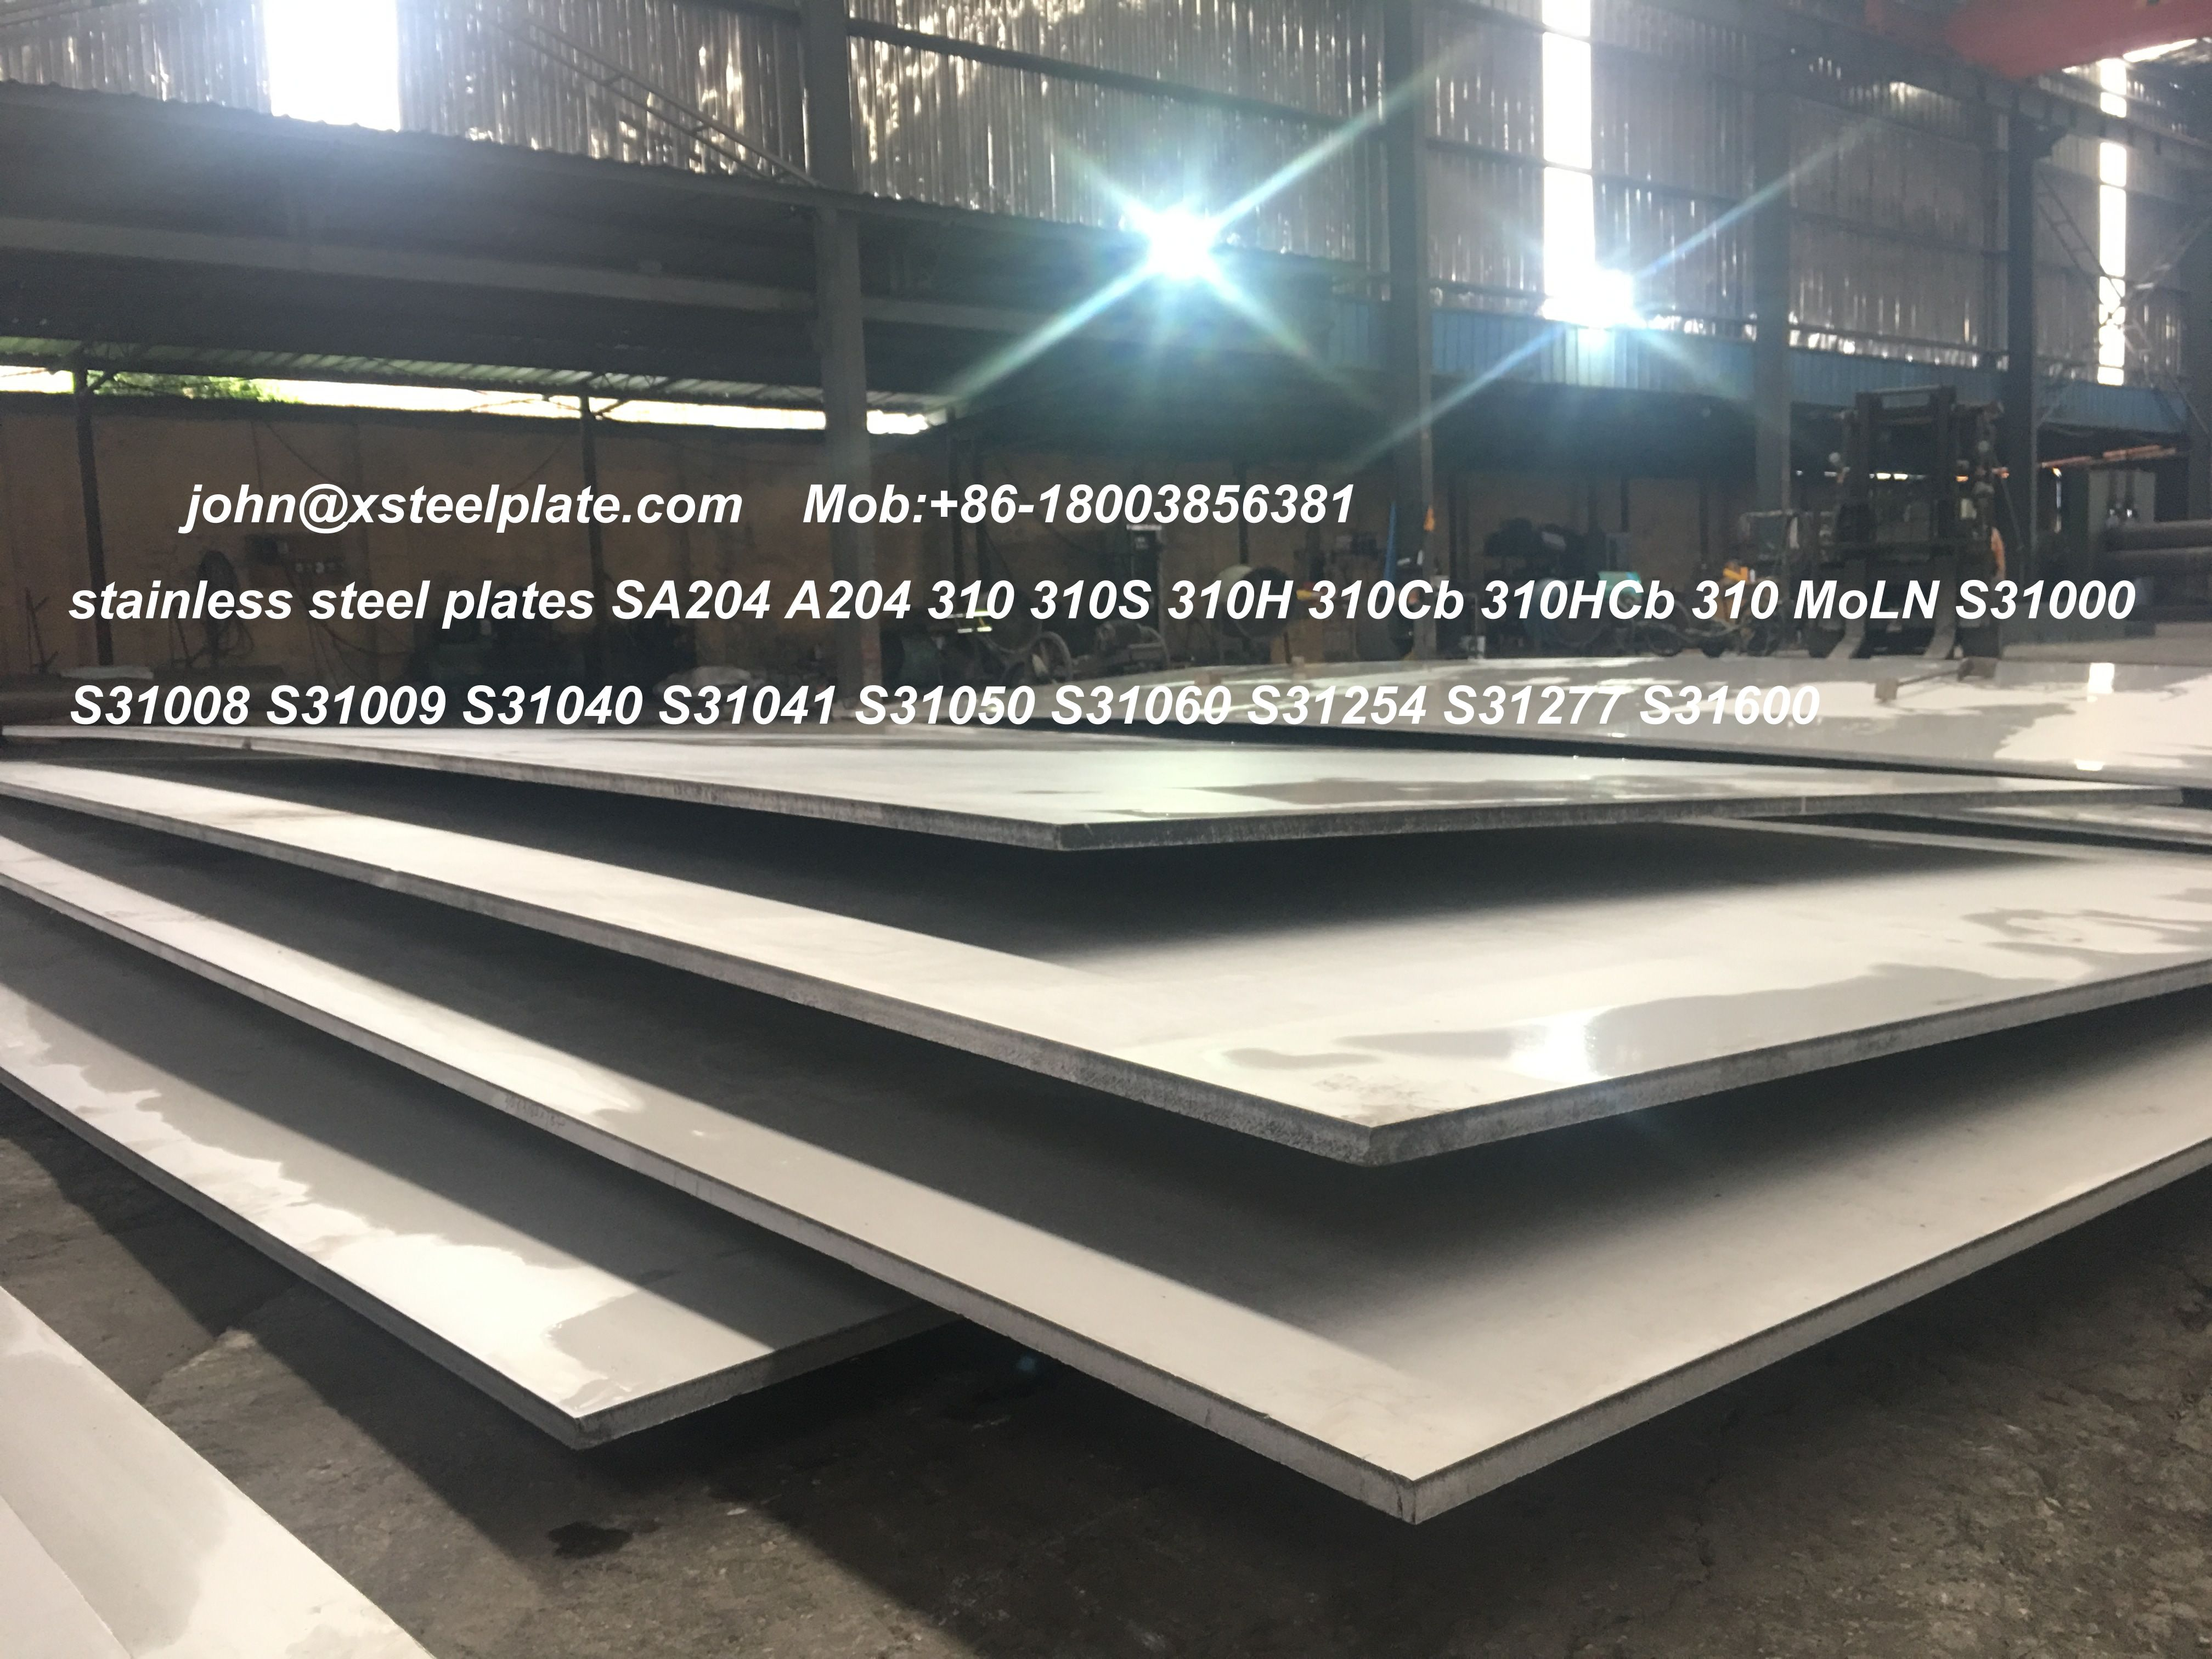 Stainless Steel Sheets Stock Of A240 Sa240 310 310s 310h 310cb 310moln Uns S31000 S31008 S31009 S31040 S31050 S31060 S31254 S31277 S31600